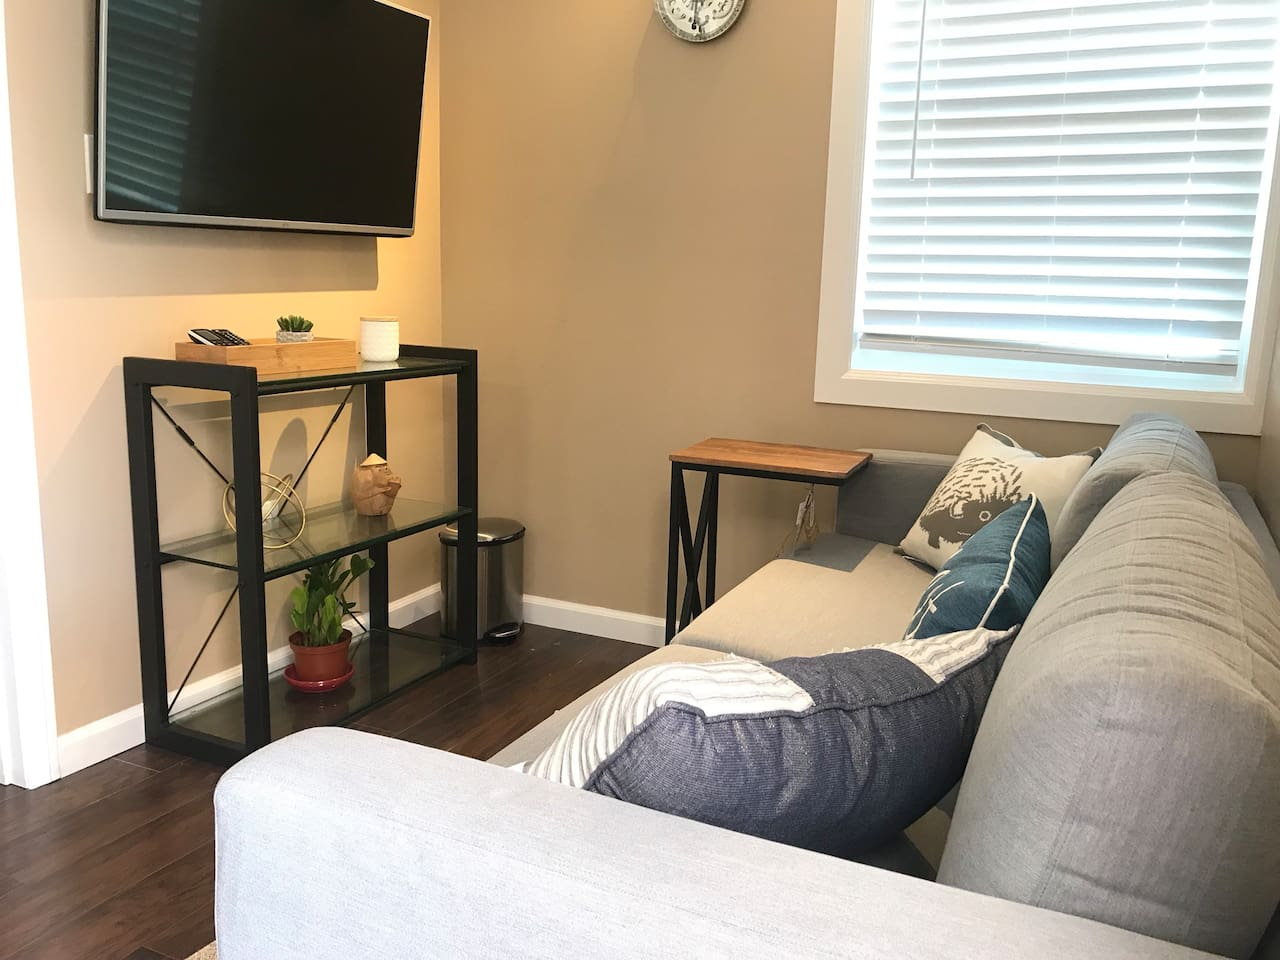 Clean and Cozy Guesthouse - Guest suites for Rent in Garden Grove ...